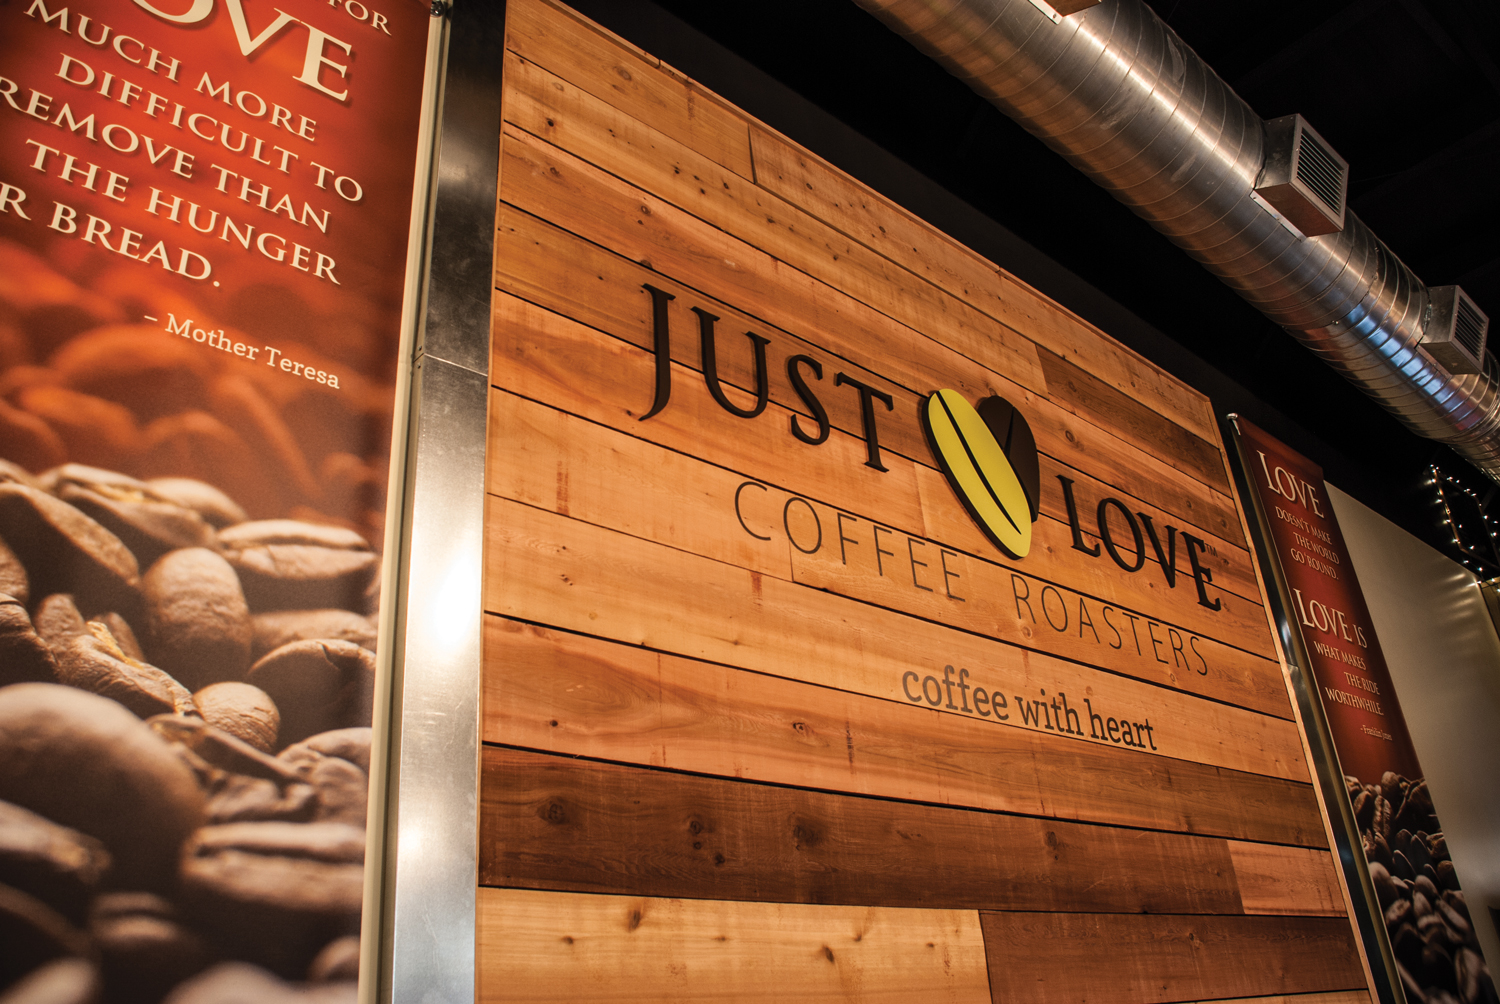 Just Love Coffee Franchise Opens In Shelby Township, Michigan